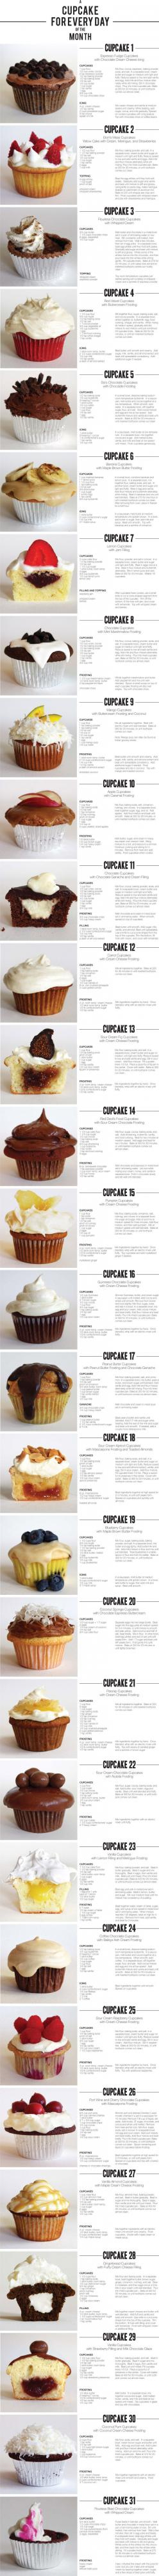 wow so many cupcake ideas!: Cupcakes Cake, Cuppycake, Cupcake Recipes, 31 Cupcakes, Sweet Tooth, Cup Cake, Dessert